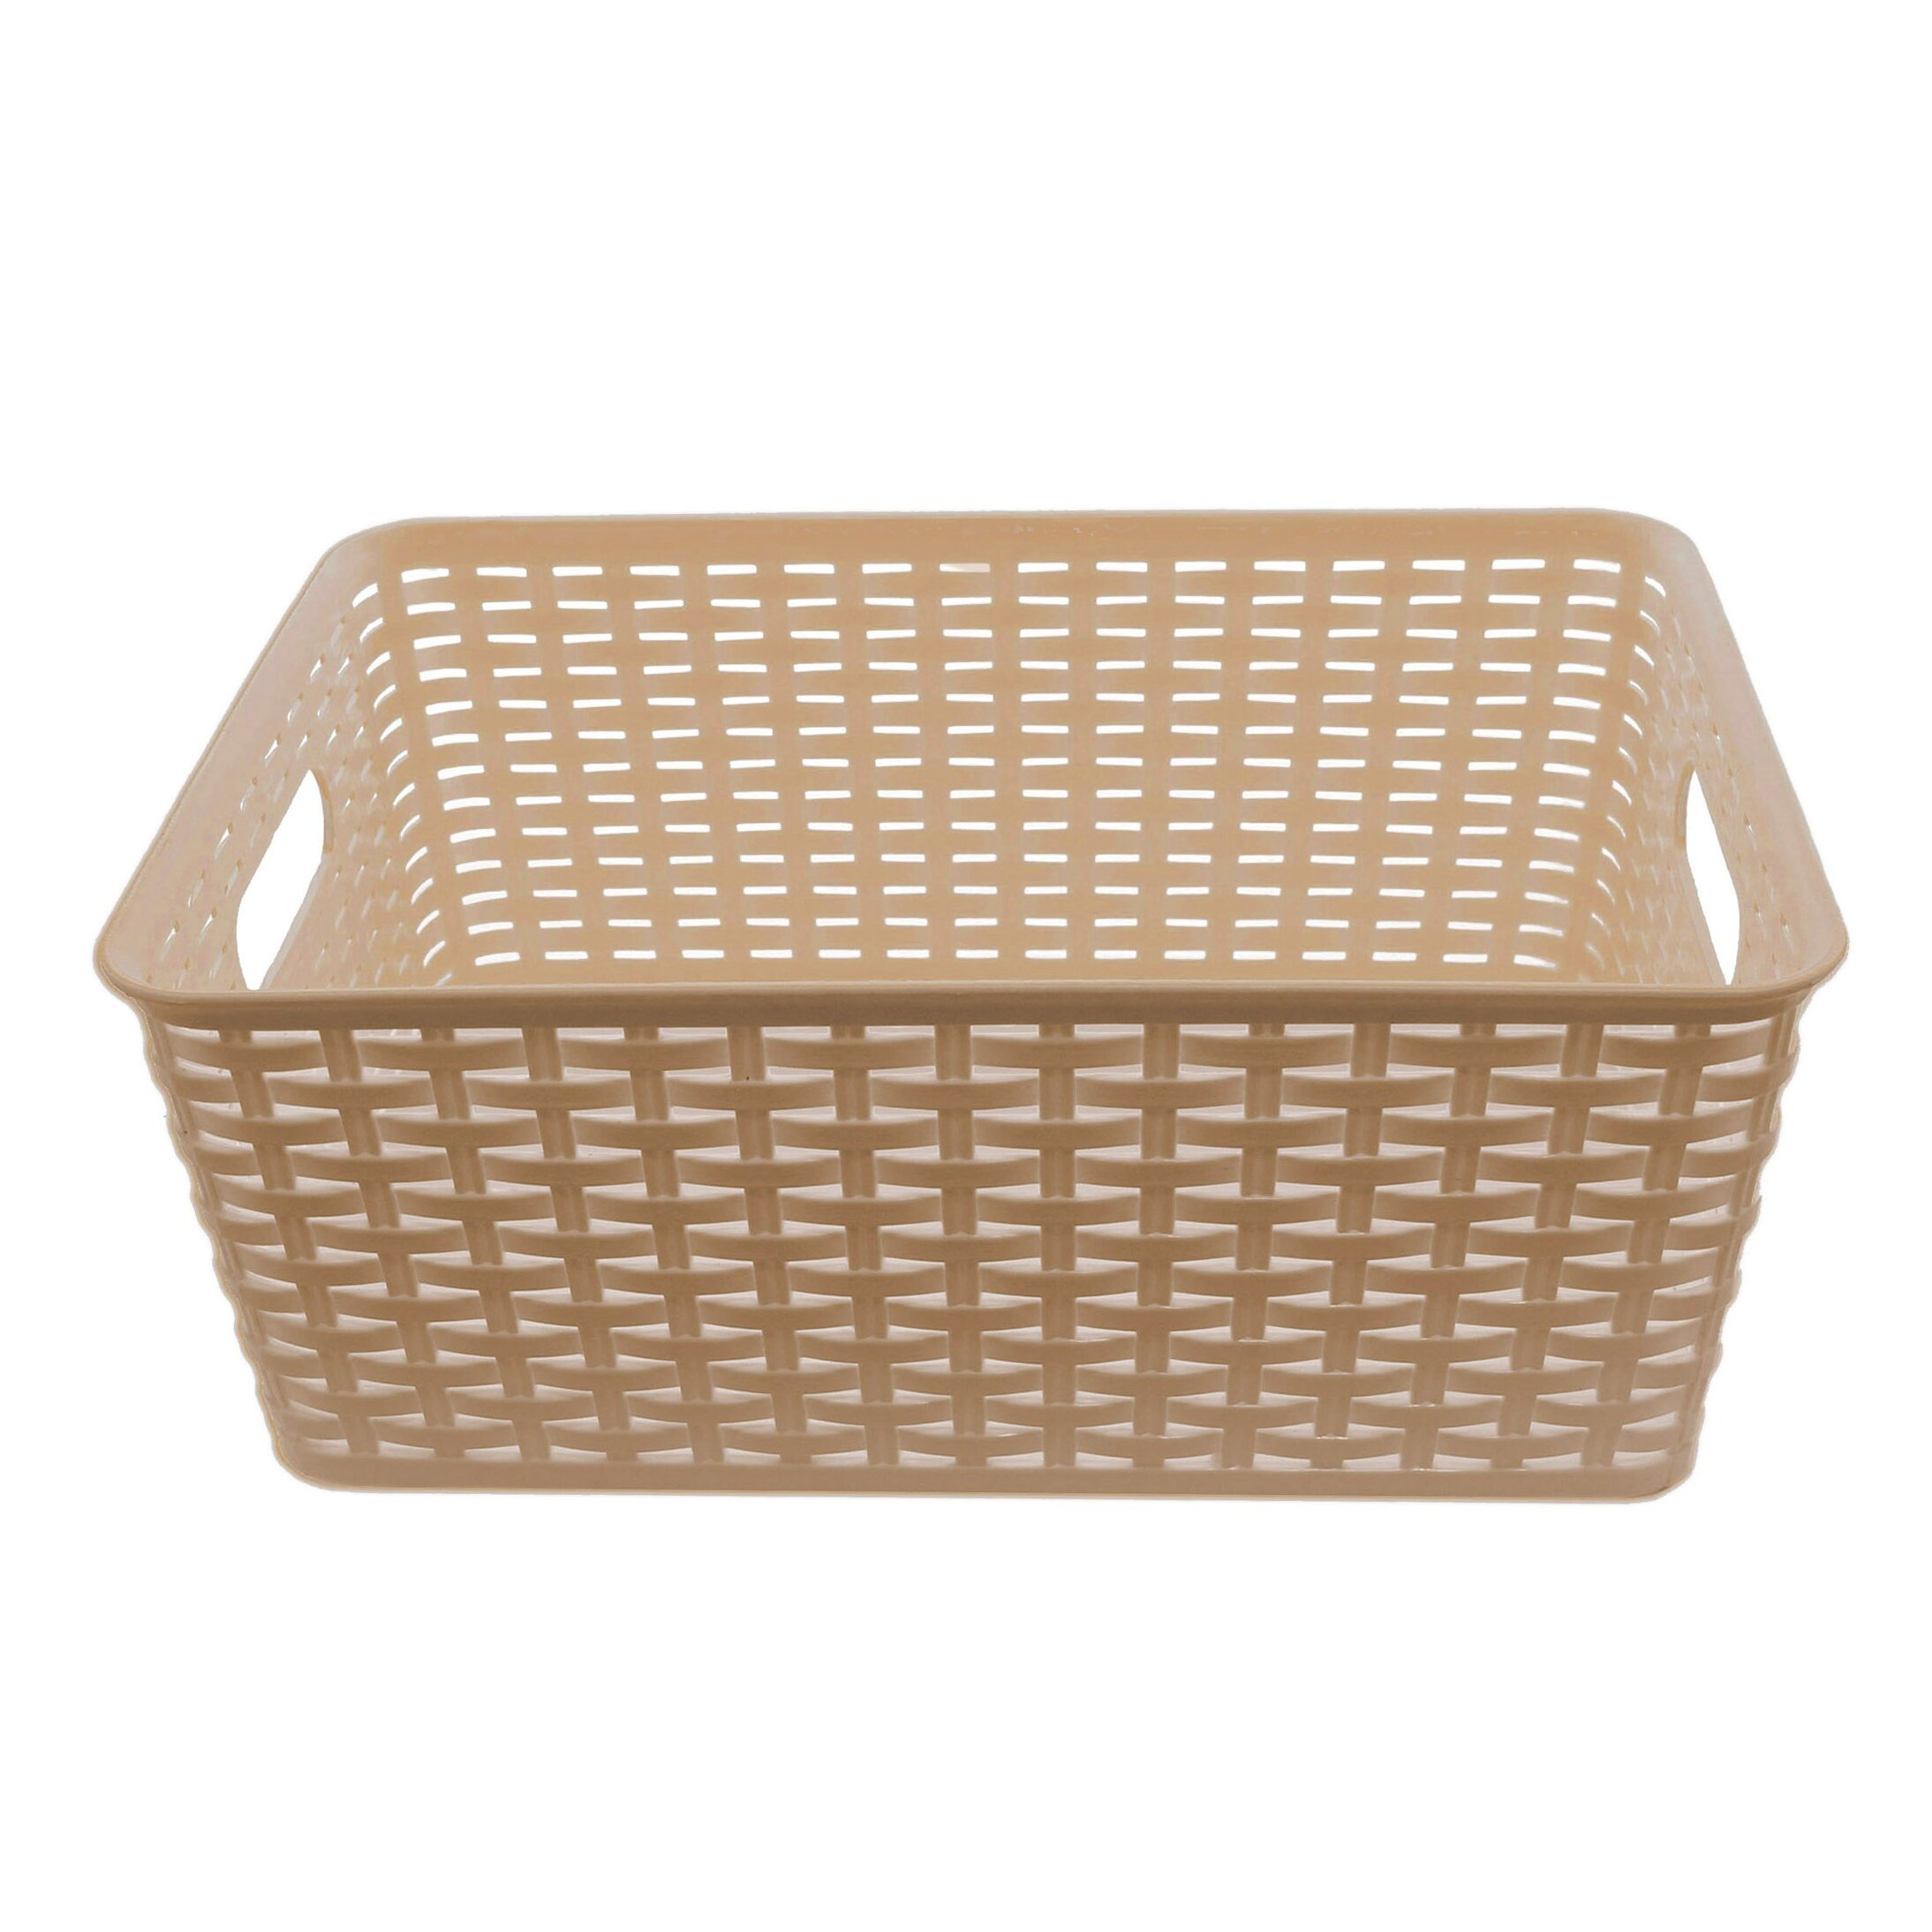 plastic rattan storage basket organizer wayfair. Black Bedroom Furniture Sets. Home Design Ideas